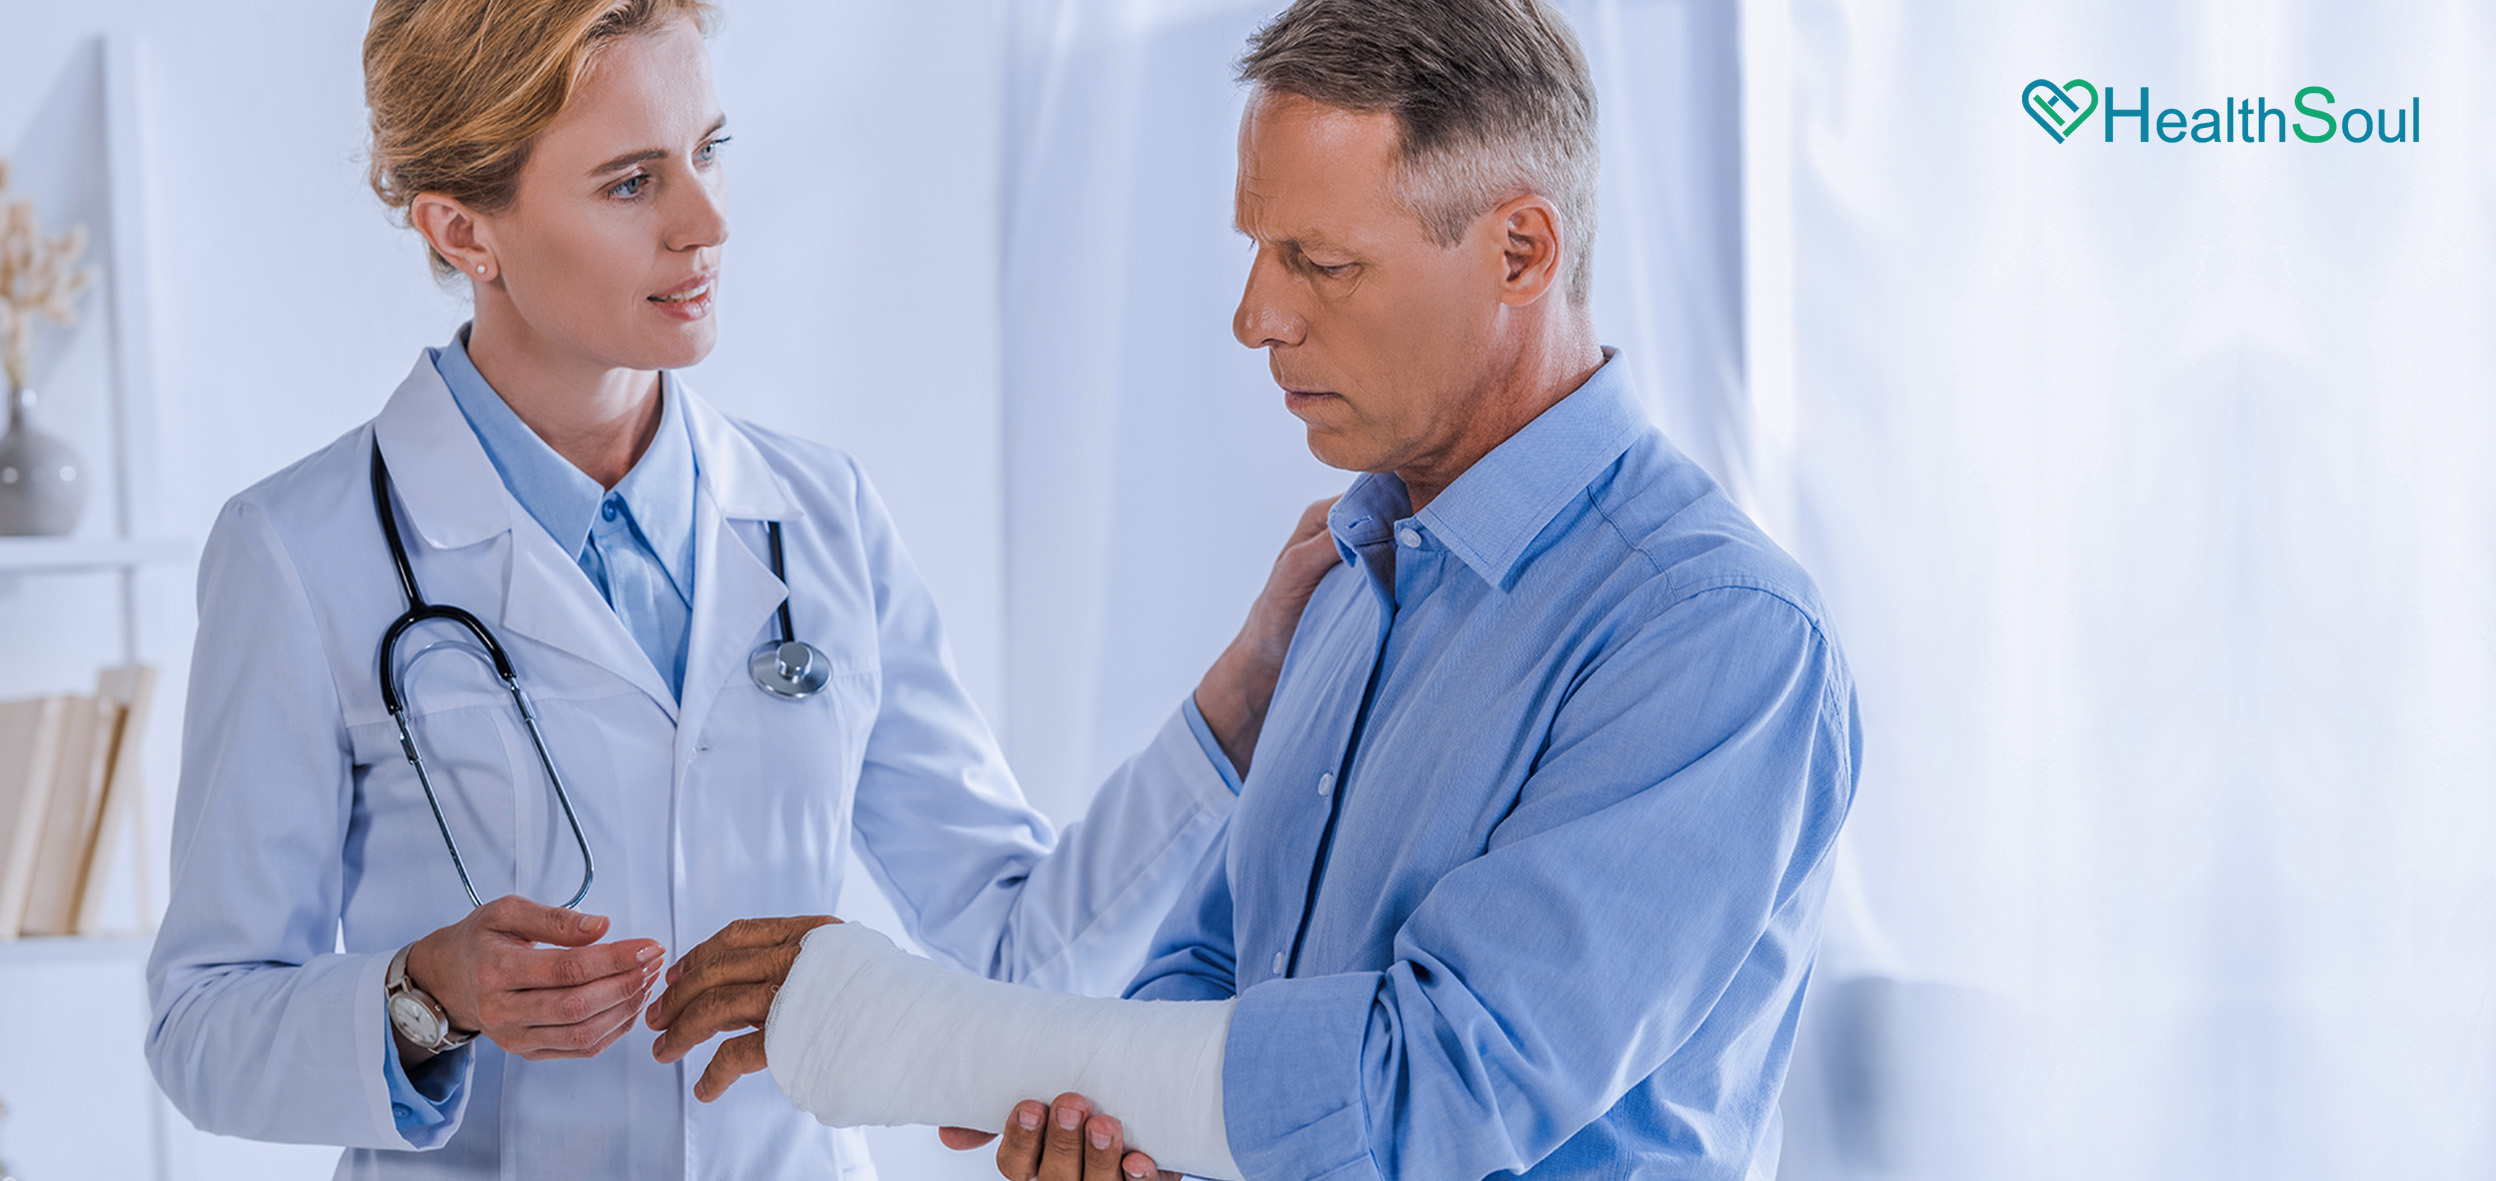 Why It Is Necessary To Have A Professional Medical Evaluation After An Accident | HealthSoul